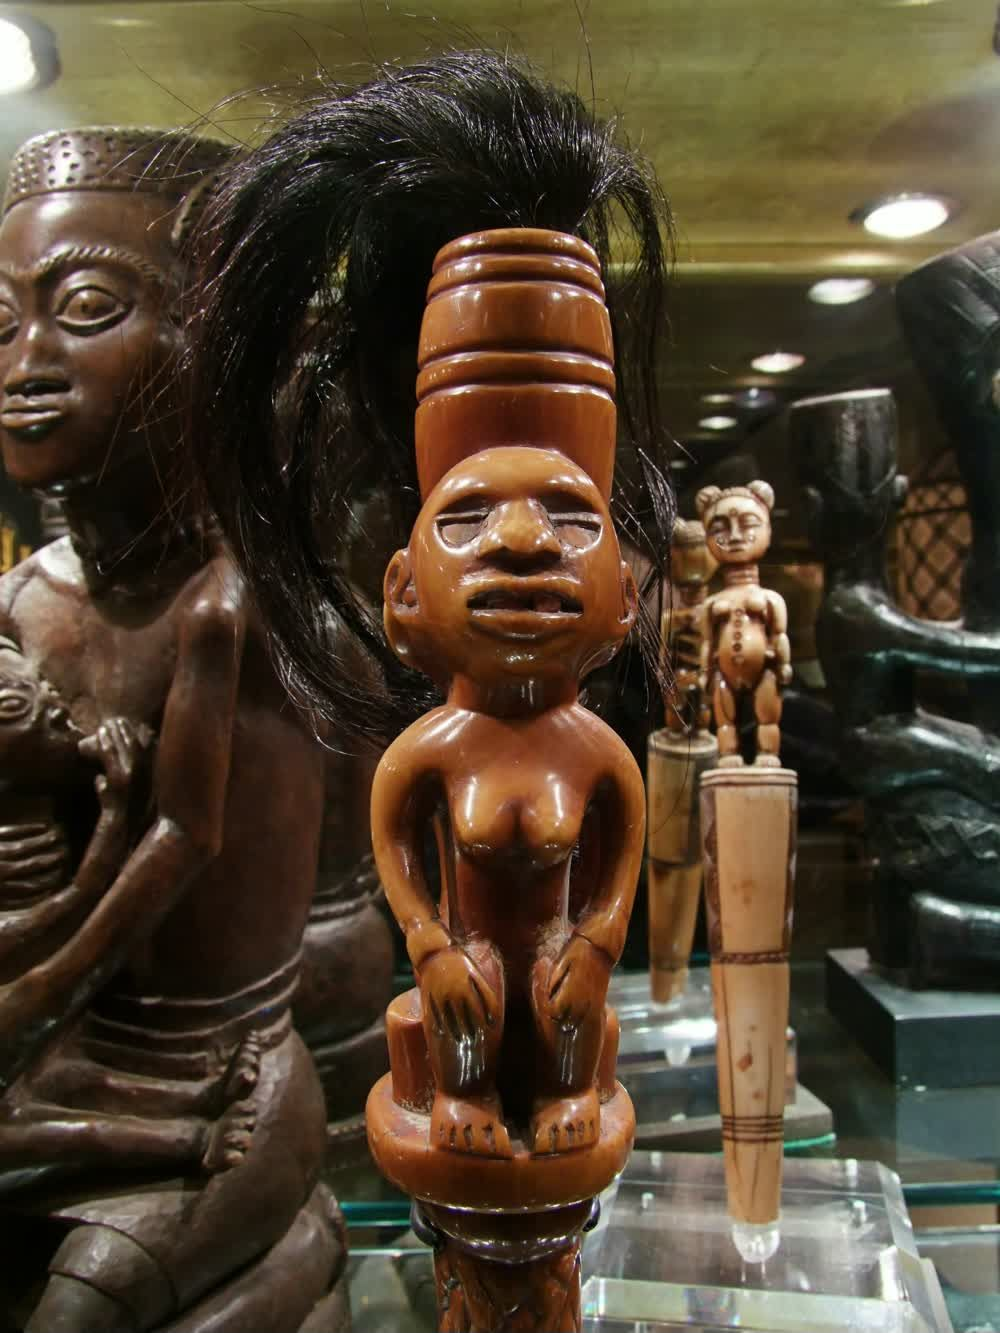 title: Wooden Statue with Real Black Hair in Poly Tail